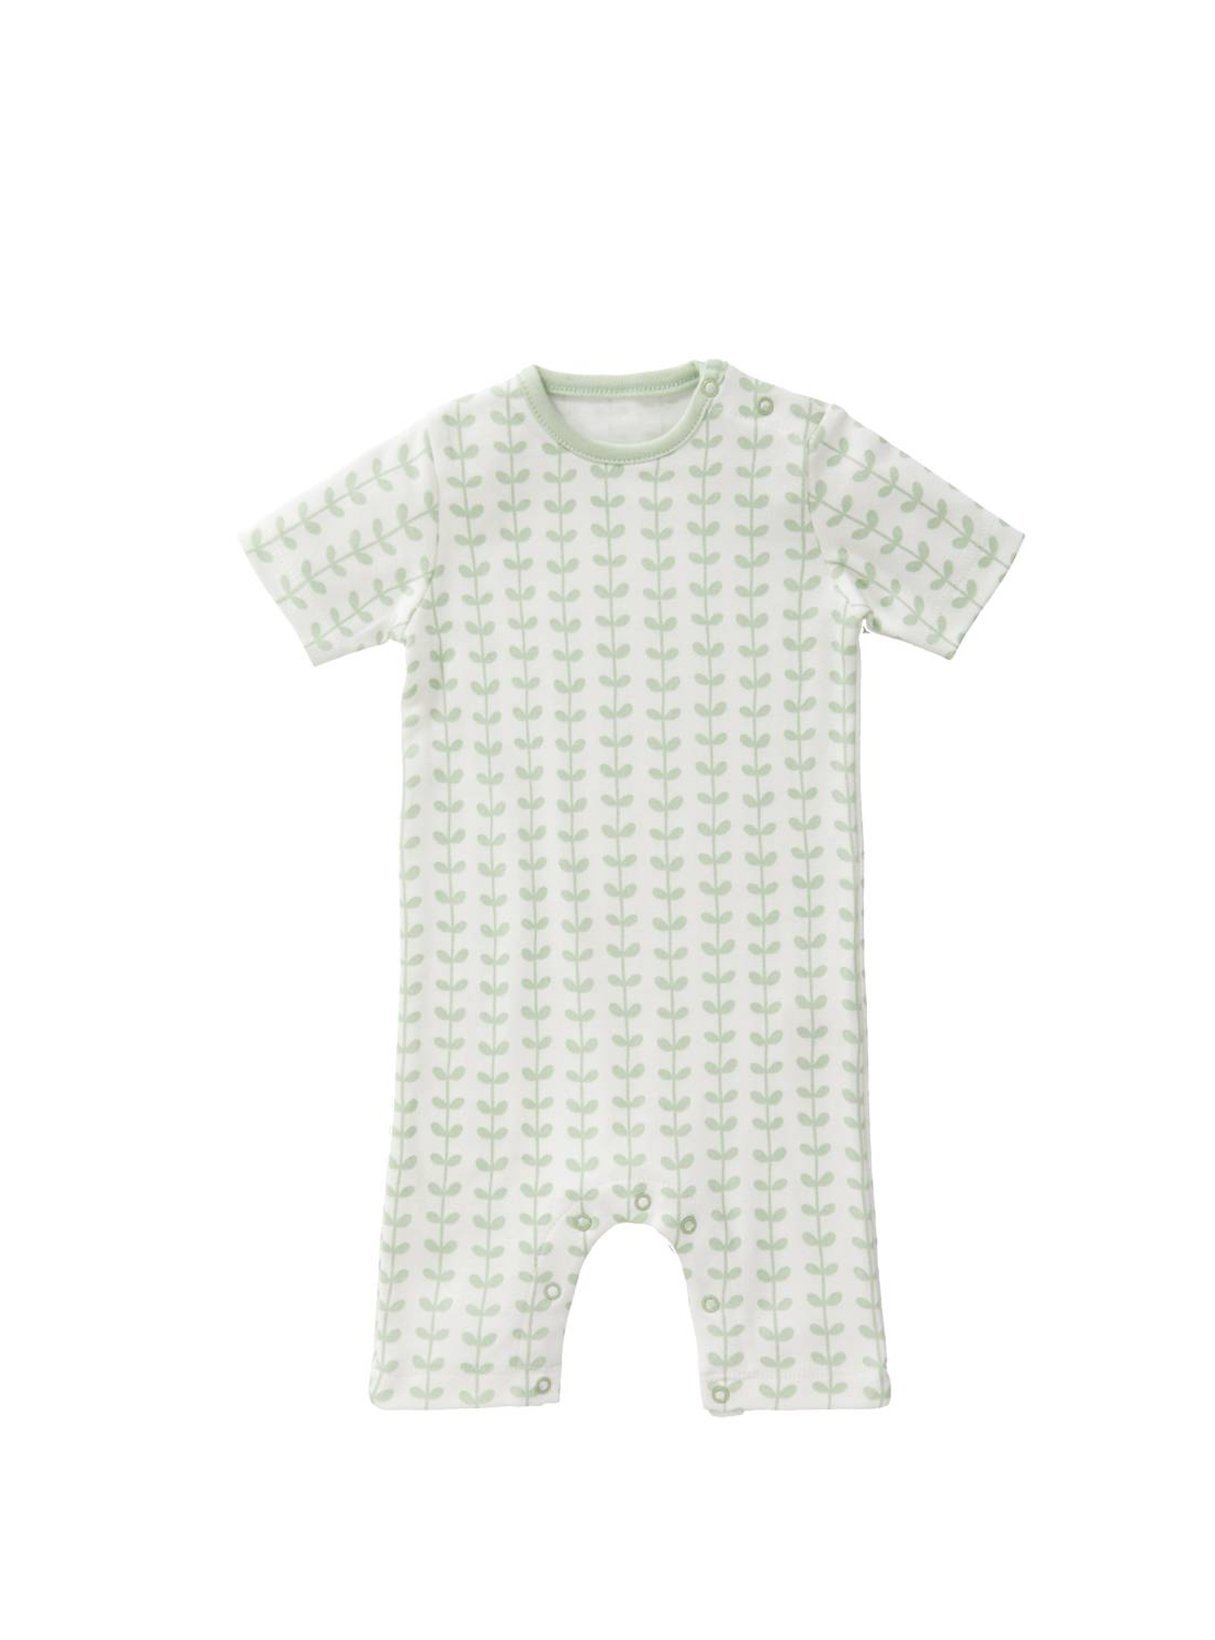 Leaves - short sleeve baby bodysuit - mint